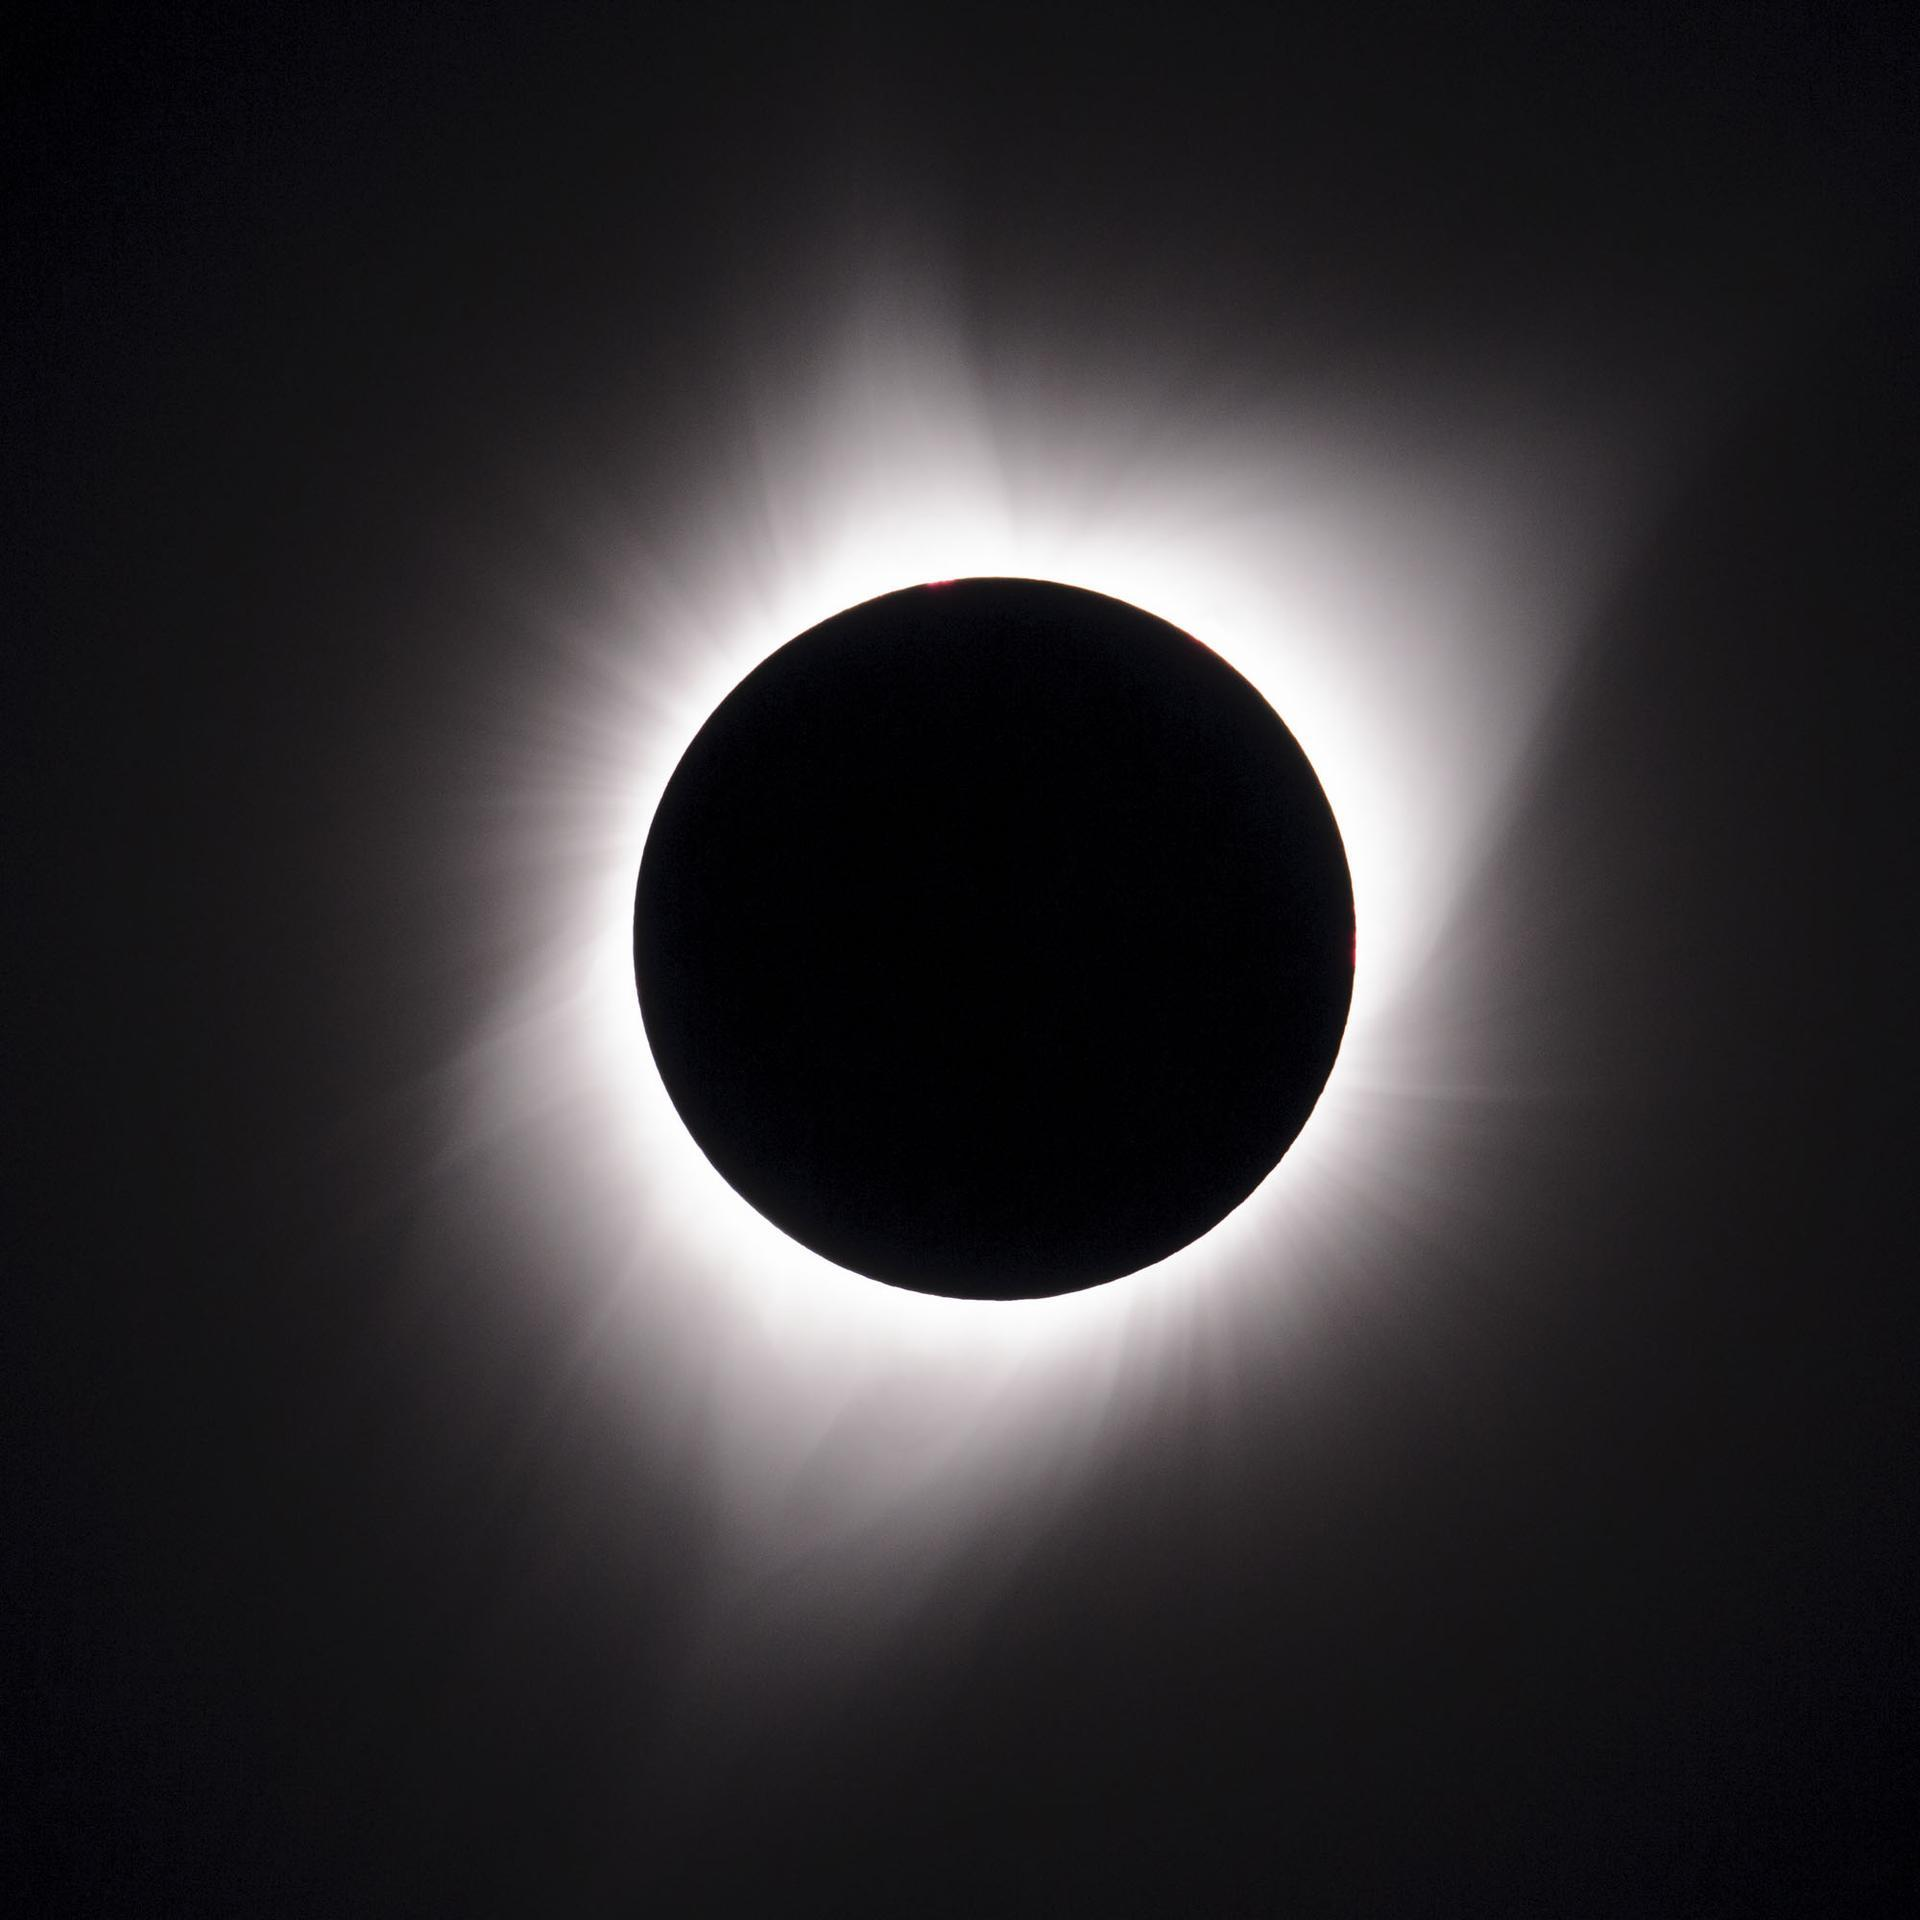 total solar eclipse nasa